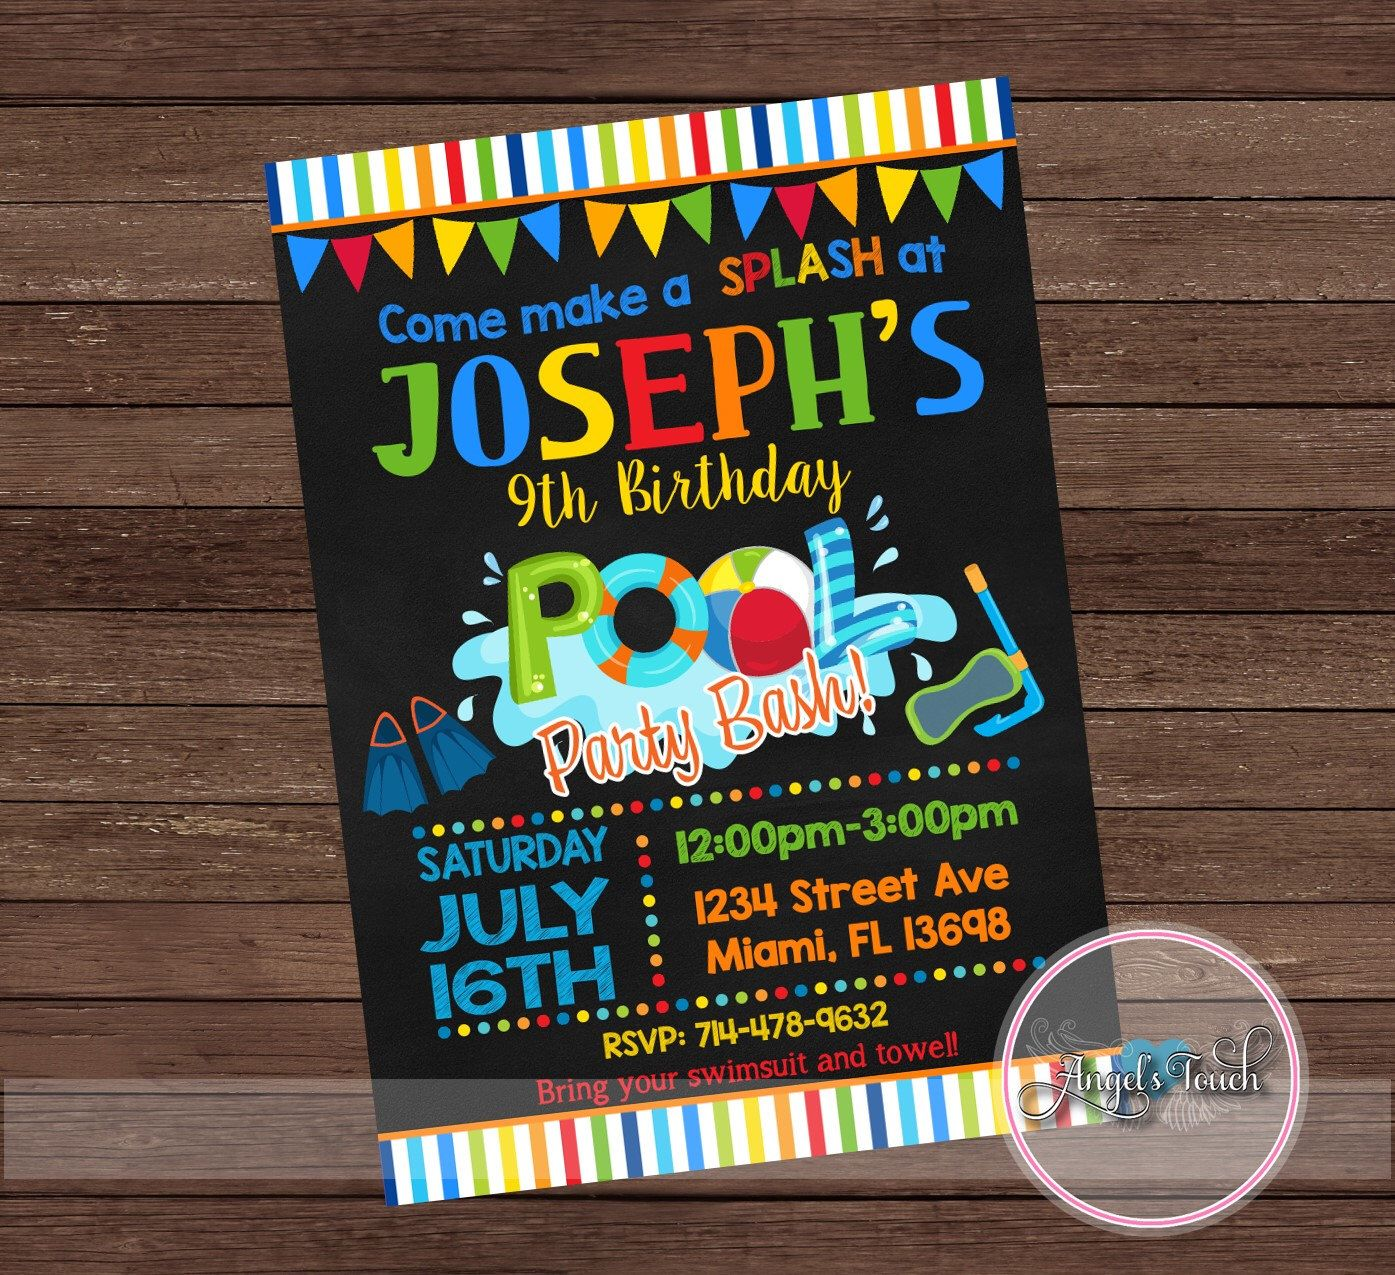 Pool party invitation pool birthday invitation pool birthday pool party invitation pool birthday invitation pool birthday party invitation boys pool party monicamarmolfo Image collections